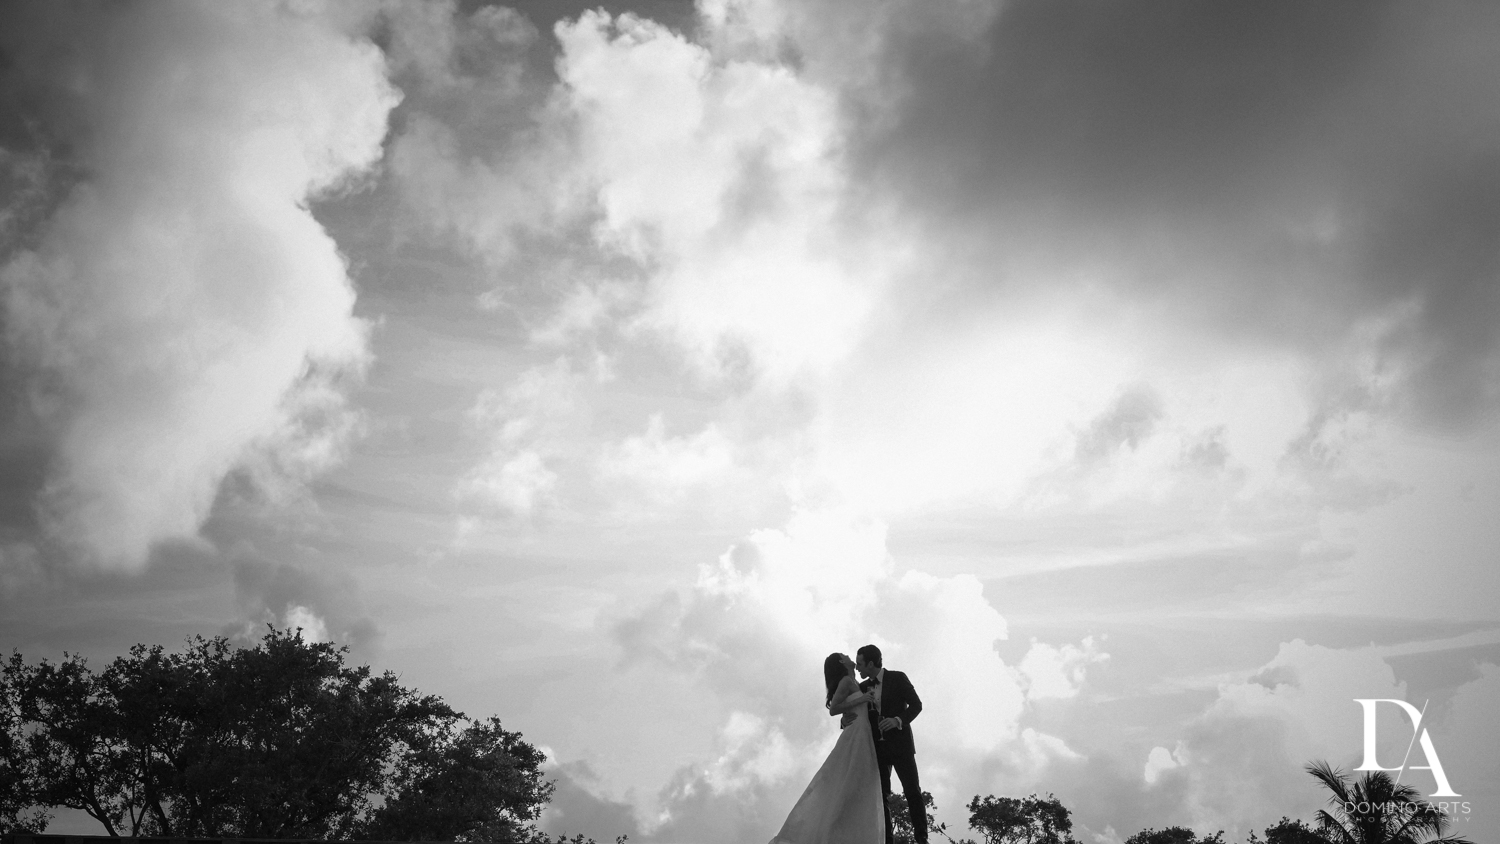 elegant B&W images from Stunning Golf Course Wedding at PGA National Palm Beach by Domino Arts Photography